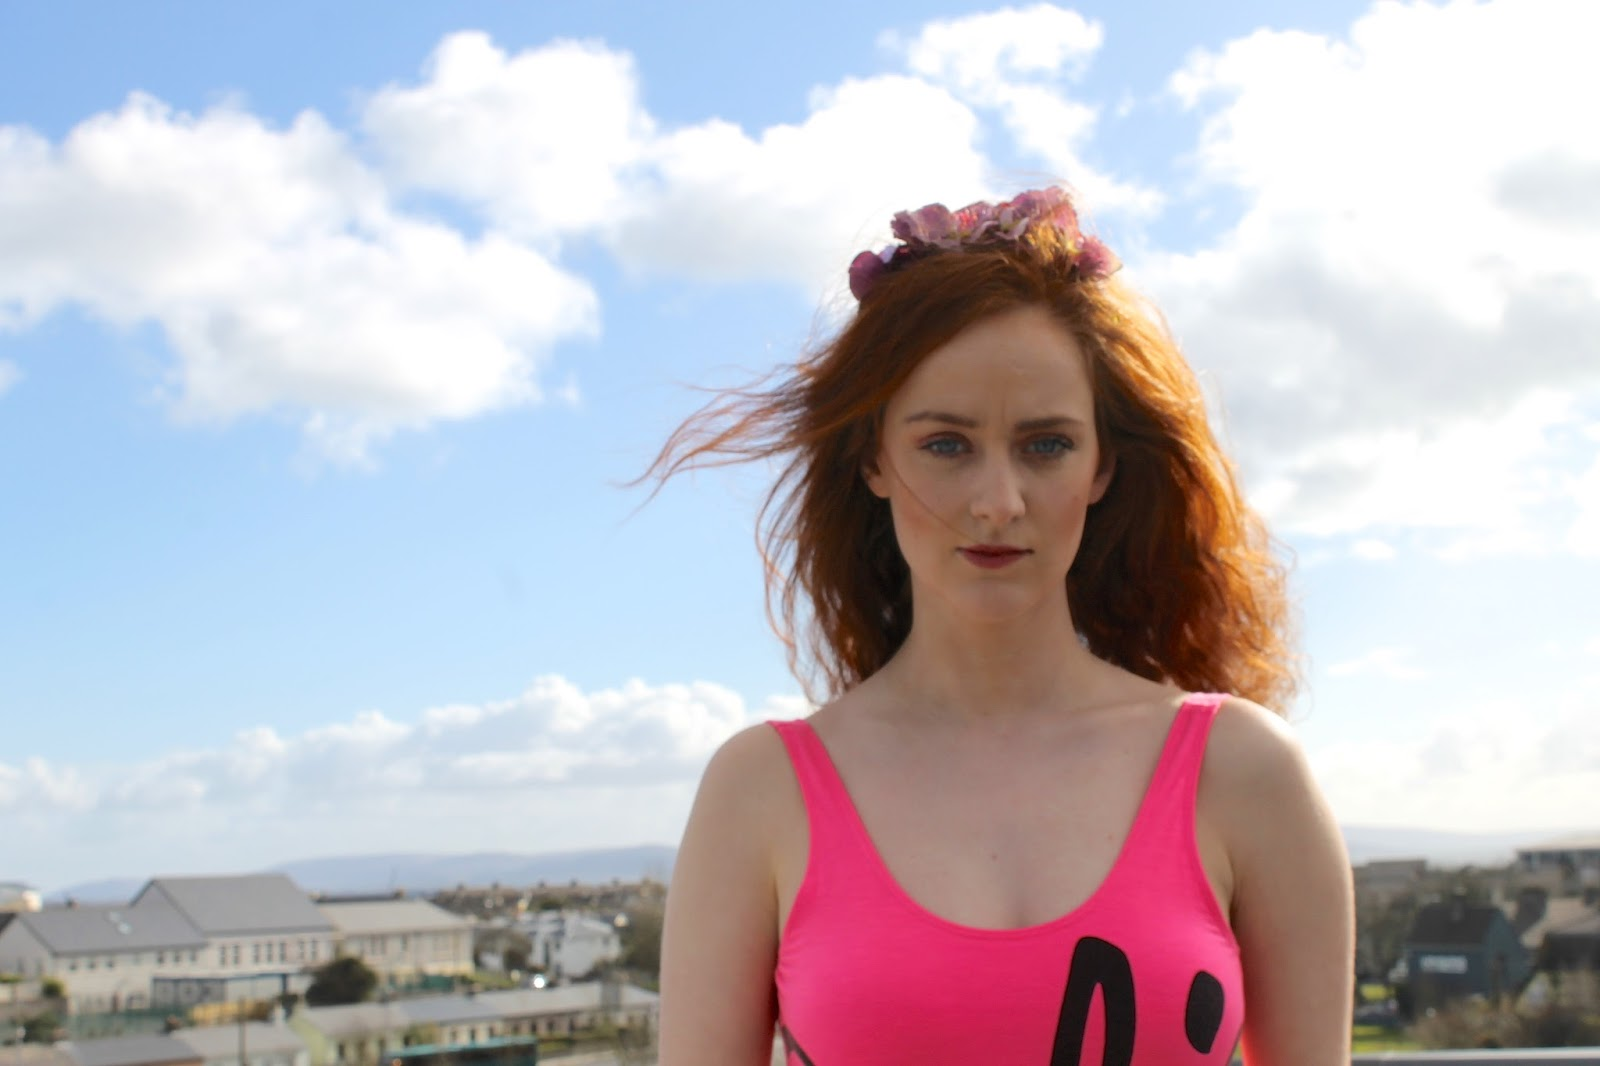 Stephanie Casserly modelling in Galway